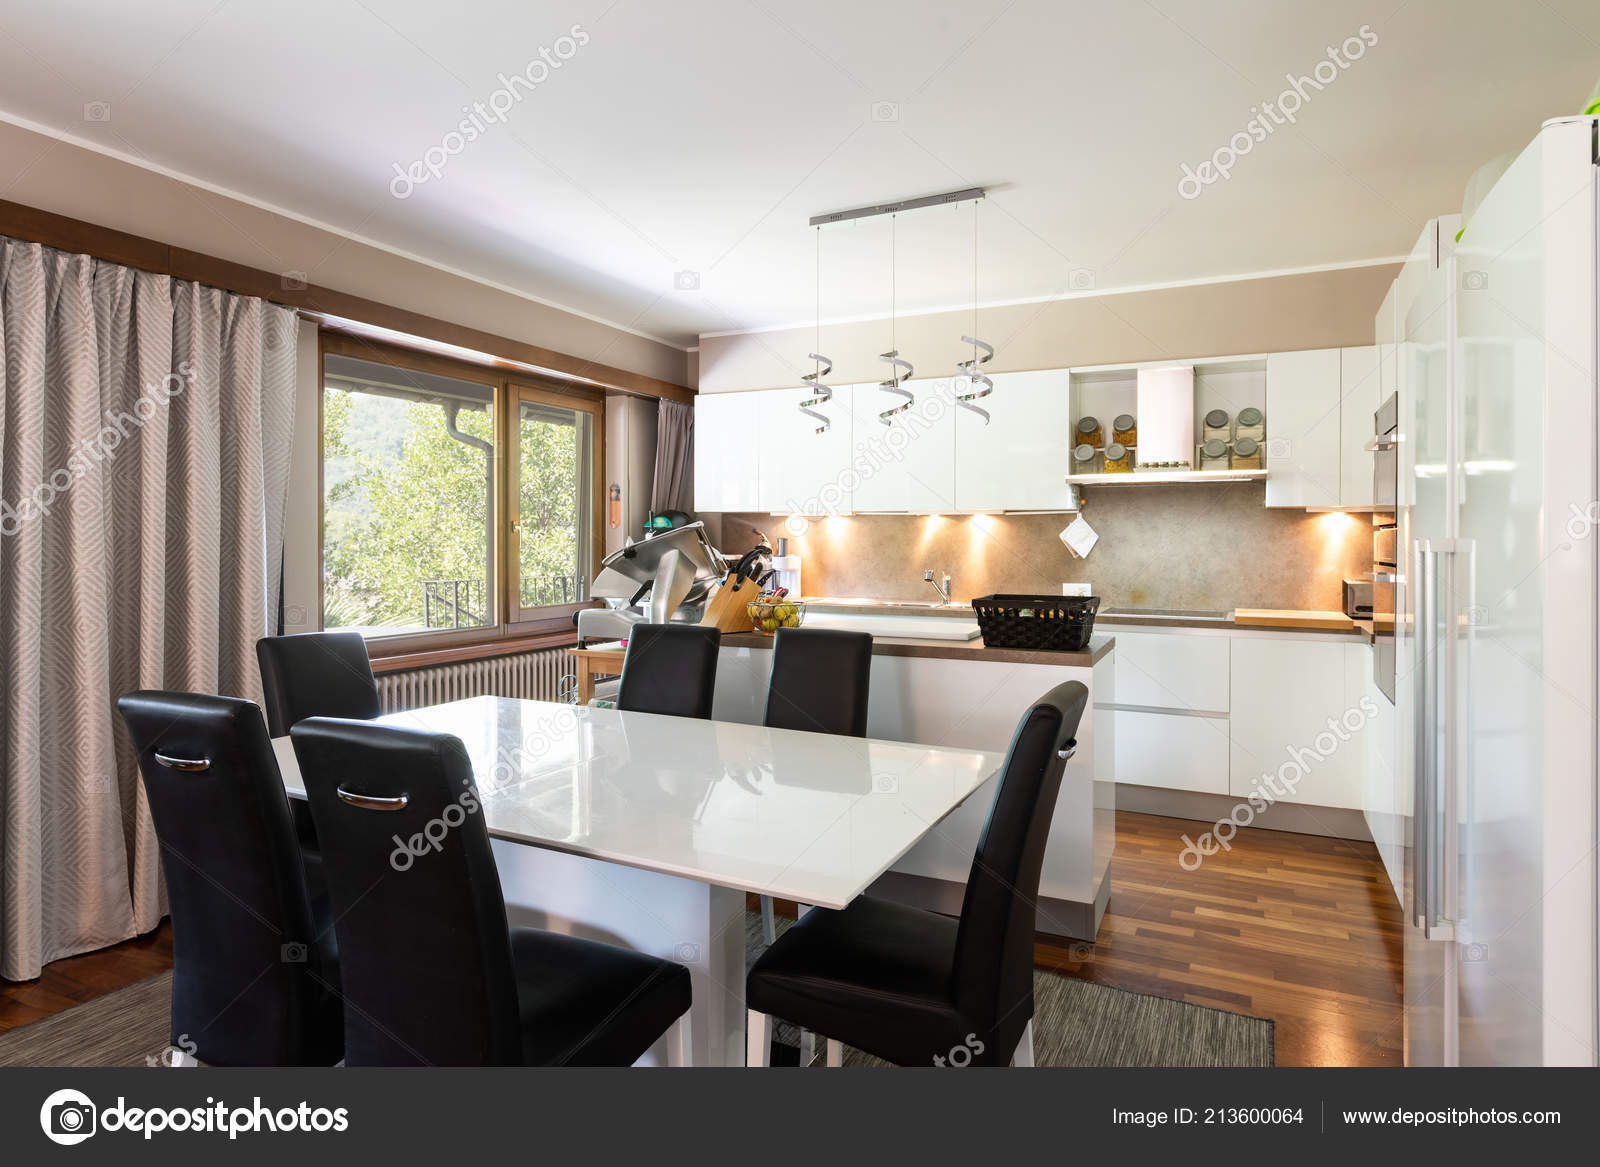 Large Kitchen Leather Table Chairs Nobody — Stock Photo ...